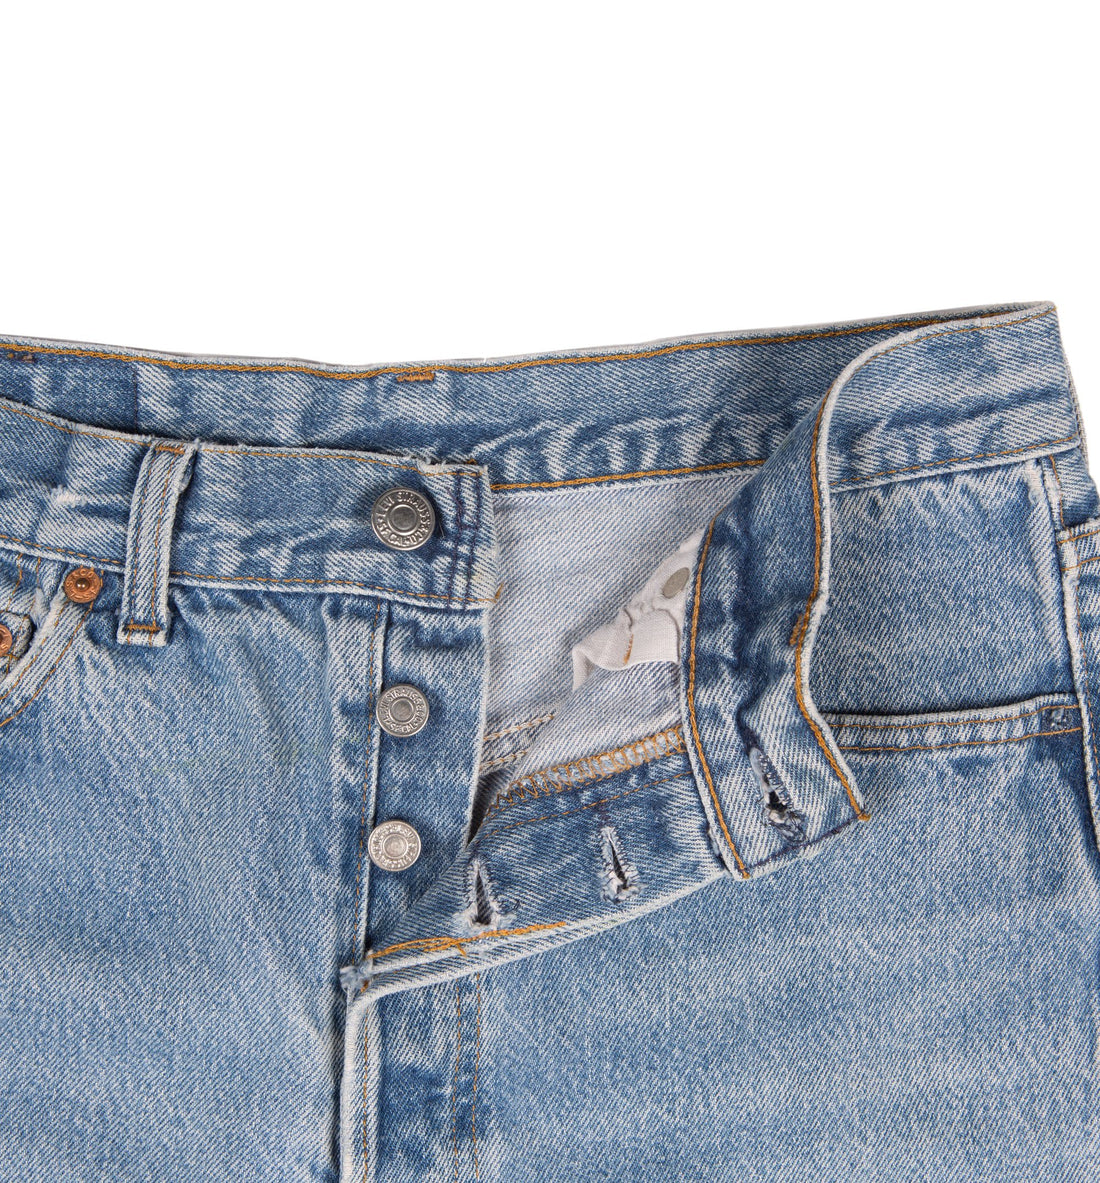 Vintage 50xx Levis Cutoffs Jeans - Vintage - Iron and Resin